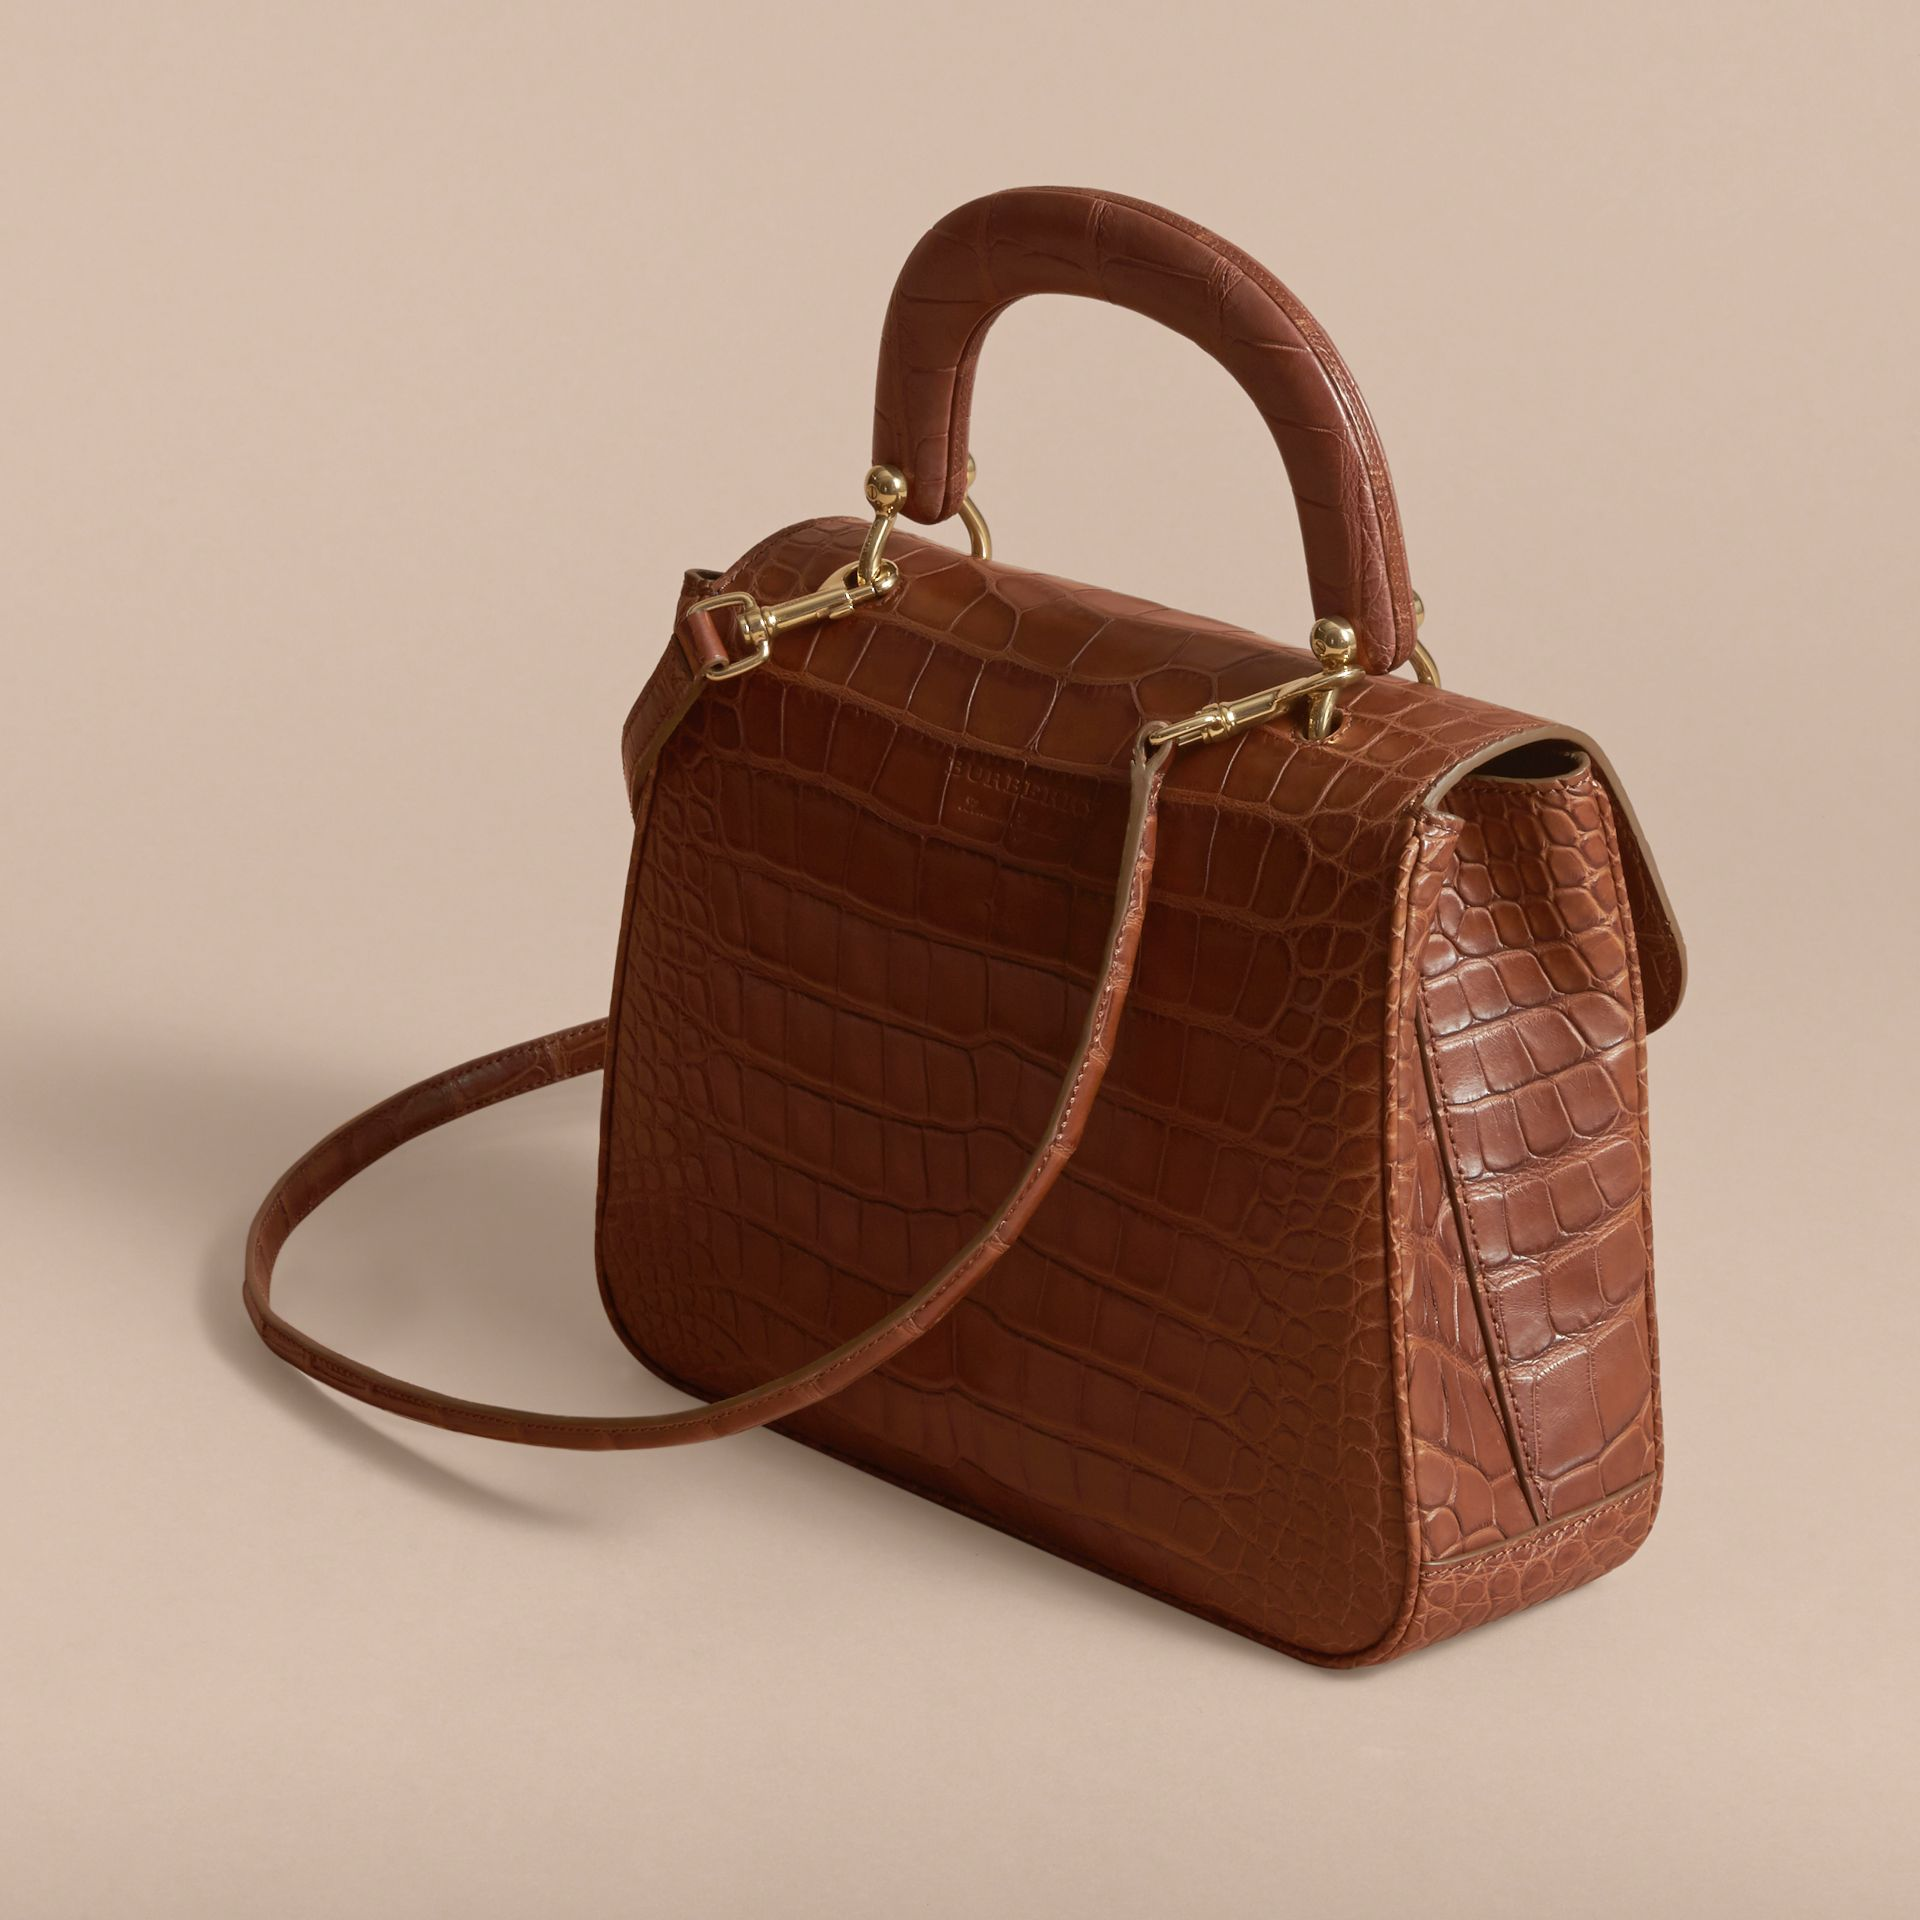 The Medium DK88 Top Handle Bag in Alligator in Tan - Women | Burberry United States - gallery image 2